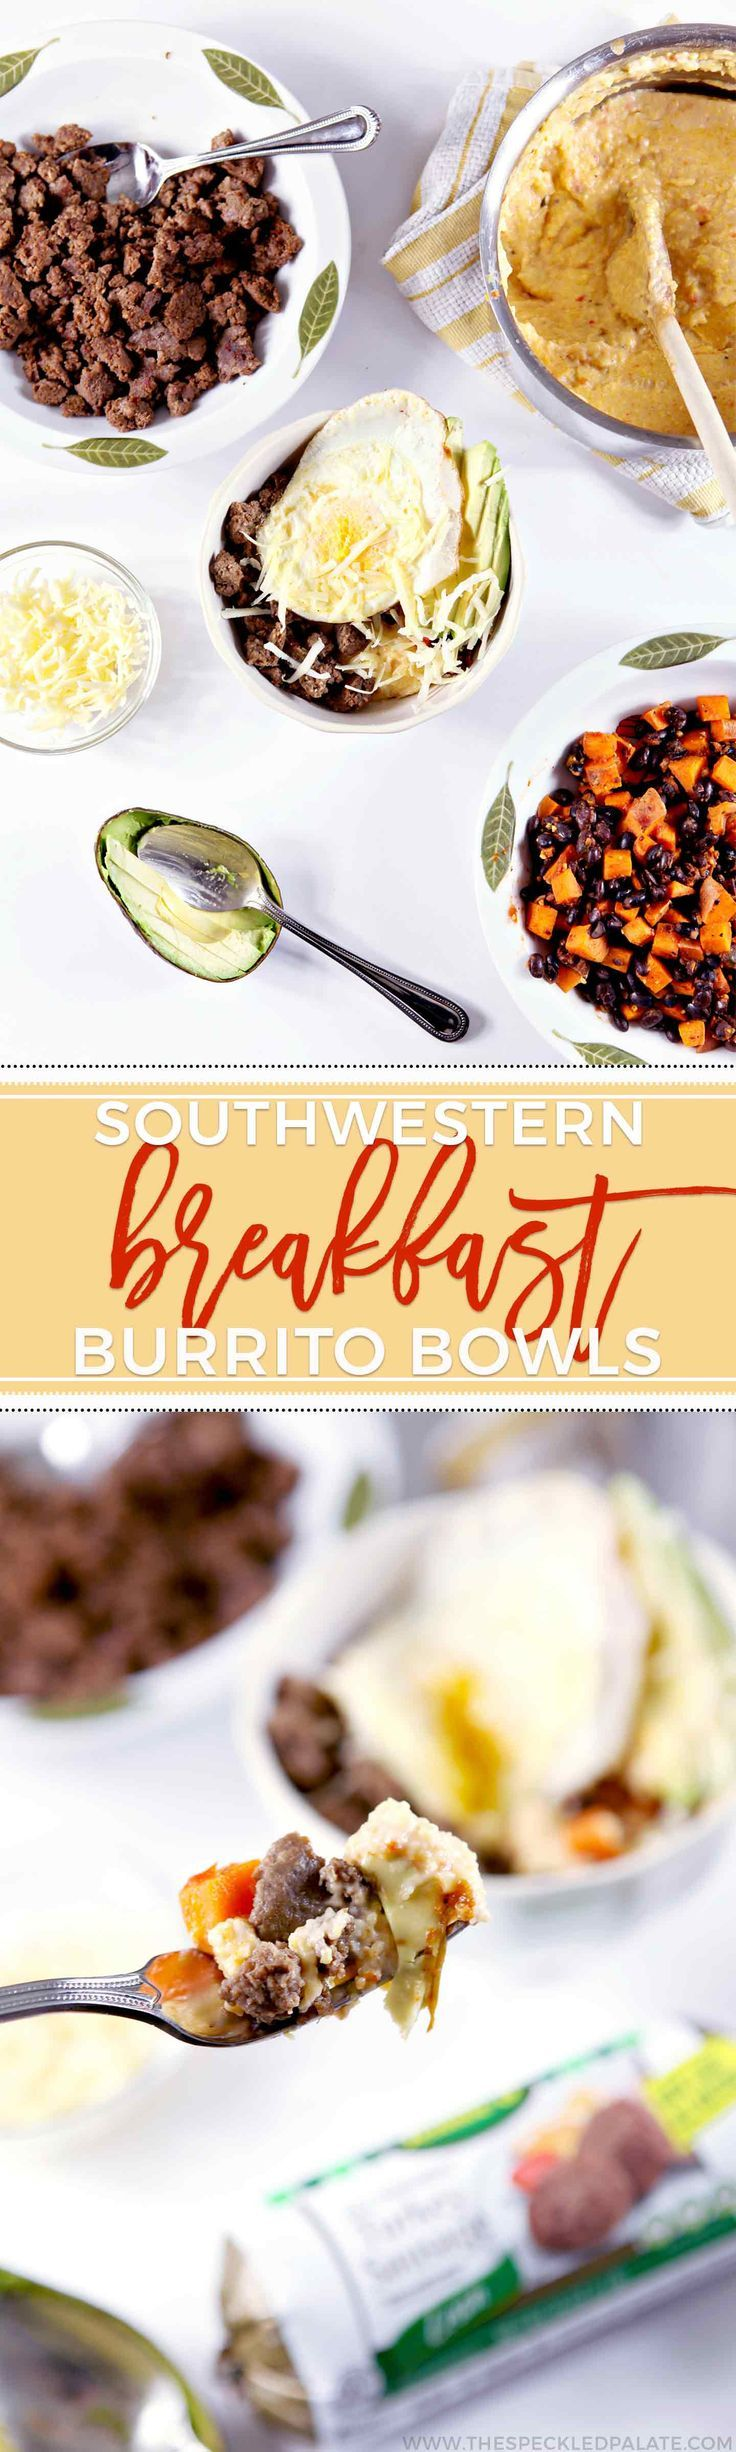 Start the morning with Southwestern Breakfast Burrito Bowls! Breakfast doesn't have to be boring... and a burrito bowl serves as a blast of flavor.